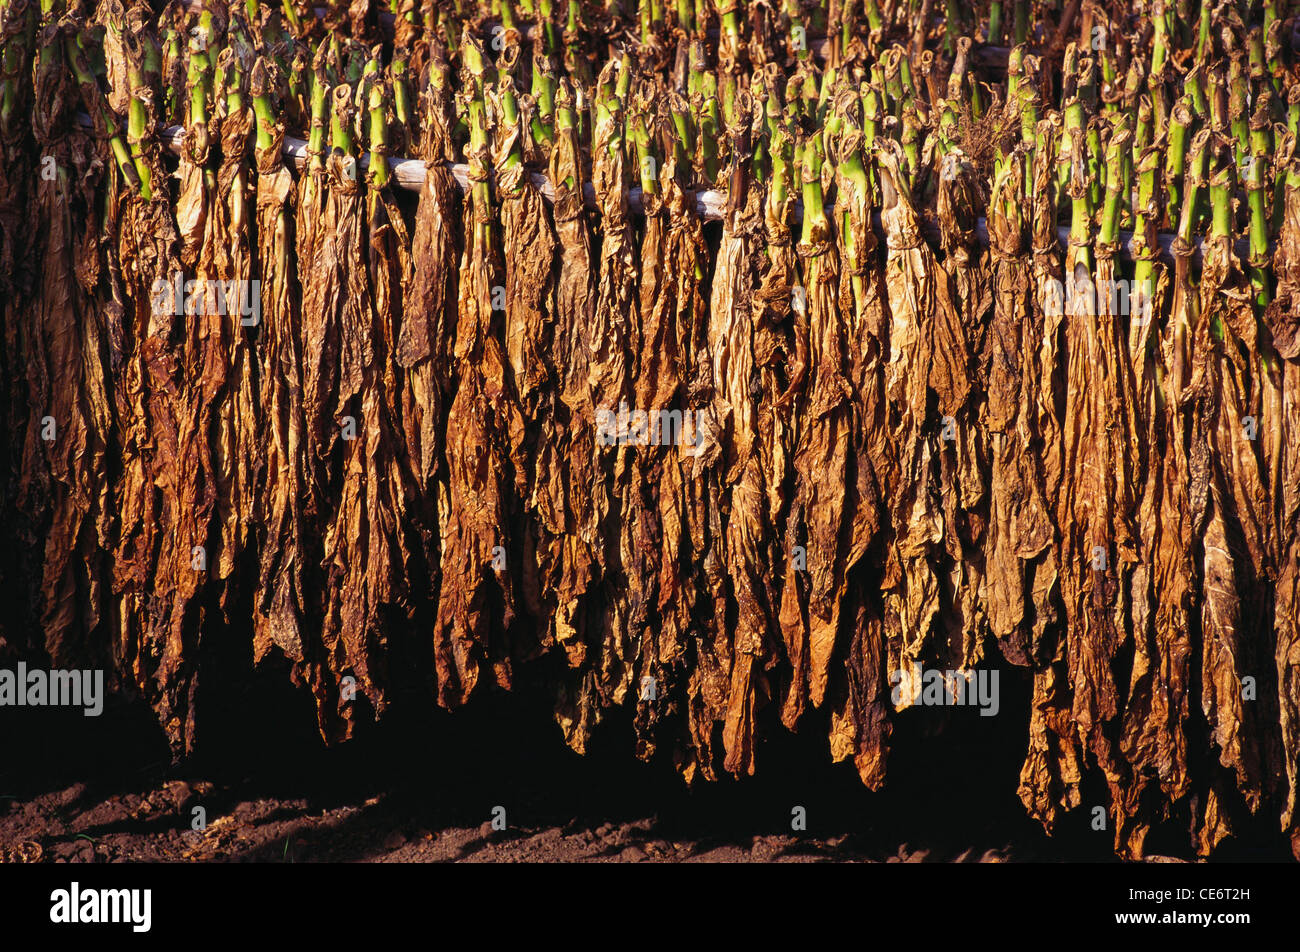 MAA 85890 : harvested tobacco leaves being dried in the sun ; india - Stock Image